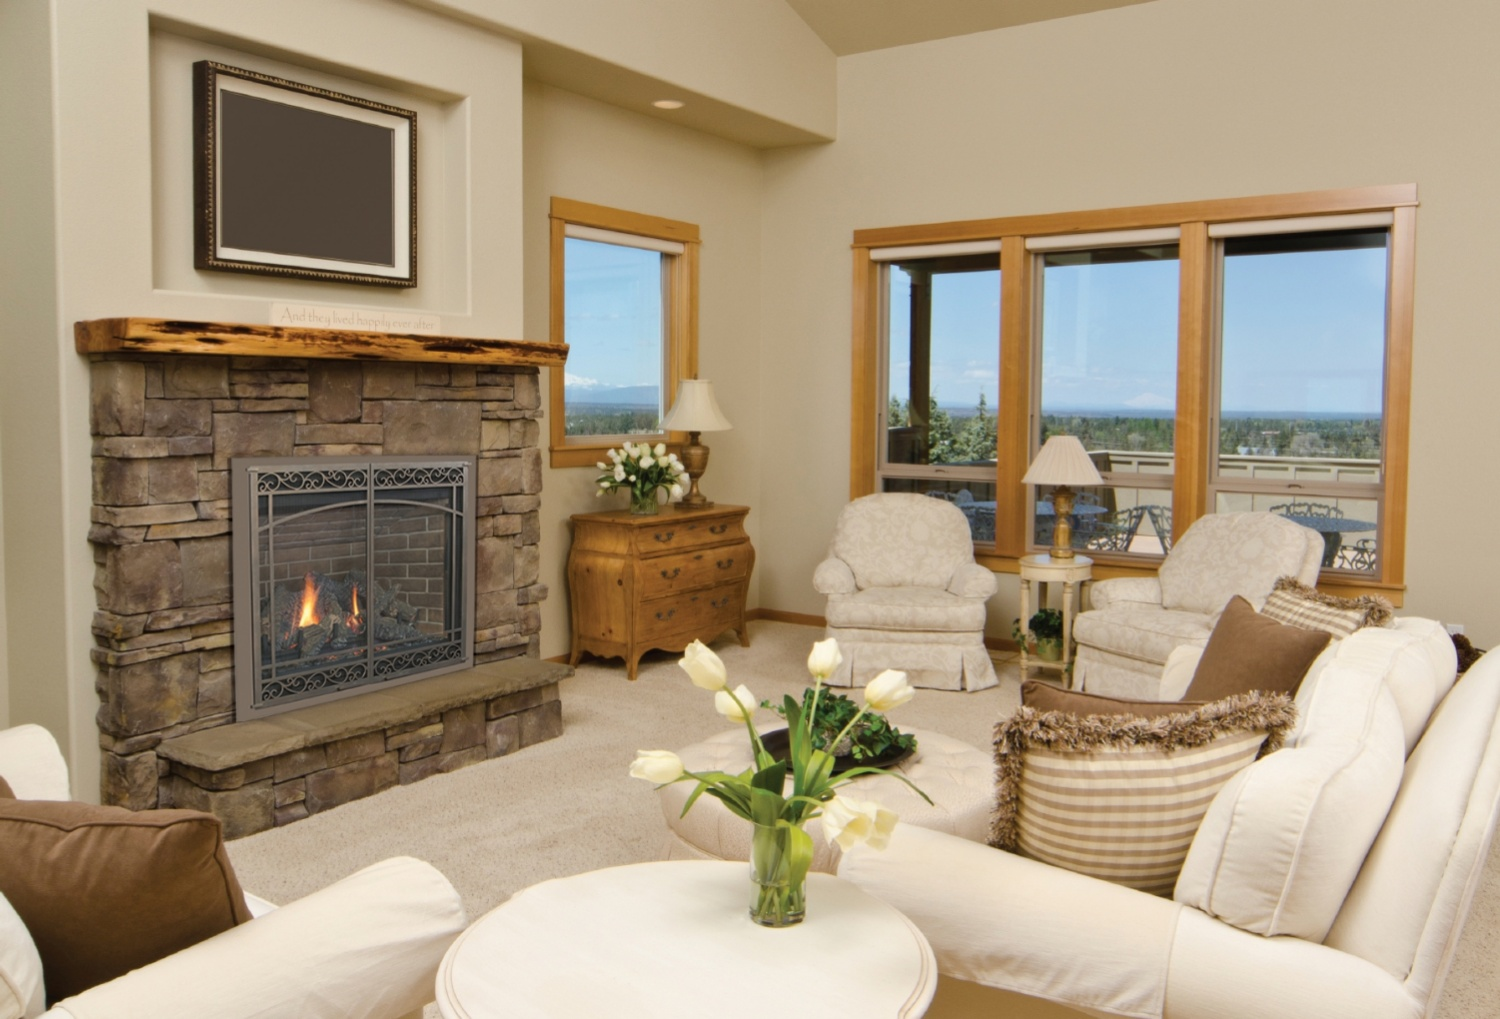 Direct Vent Gas Fireplace Ratings Ambiance Intrigue Gas Fireplace The Fireplace Place